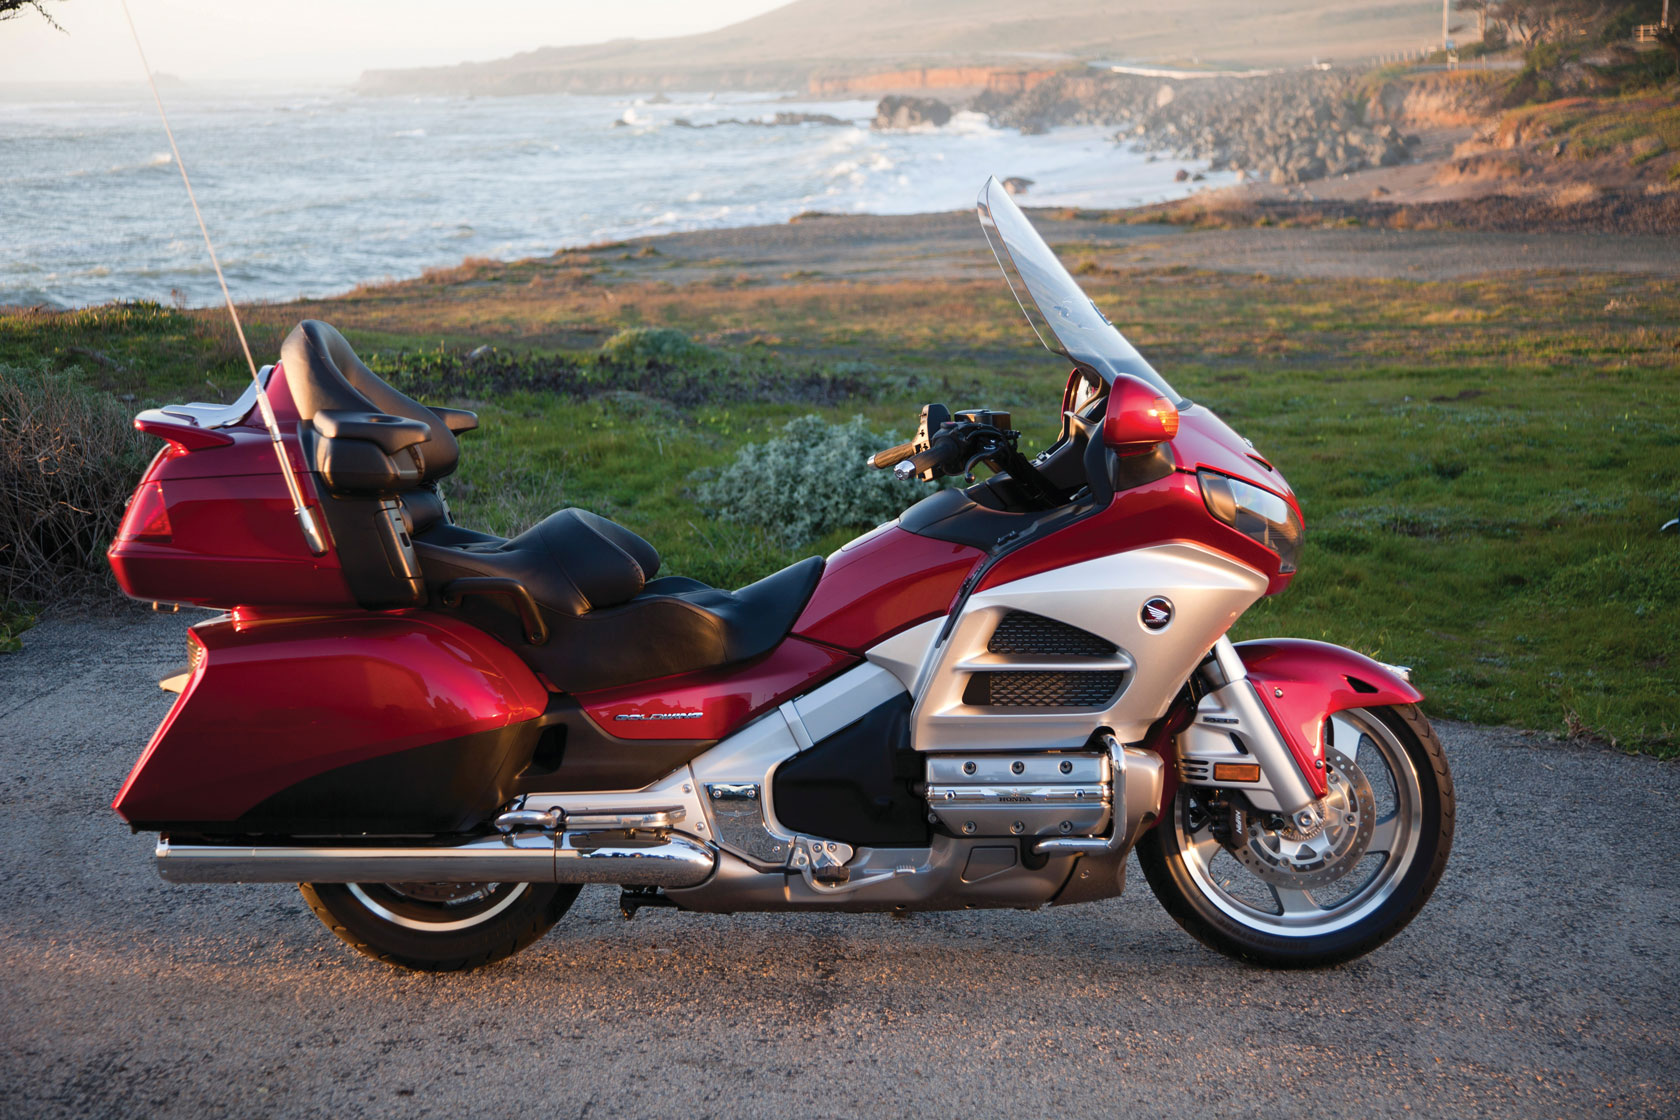 Honda GL 1800 Gold Wing 2004 images #82713